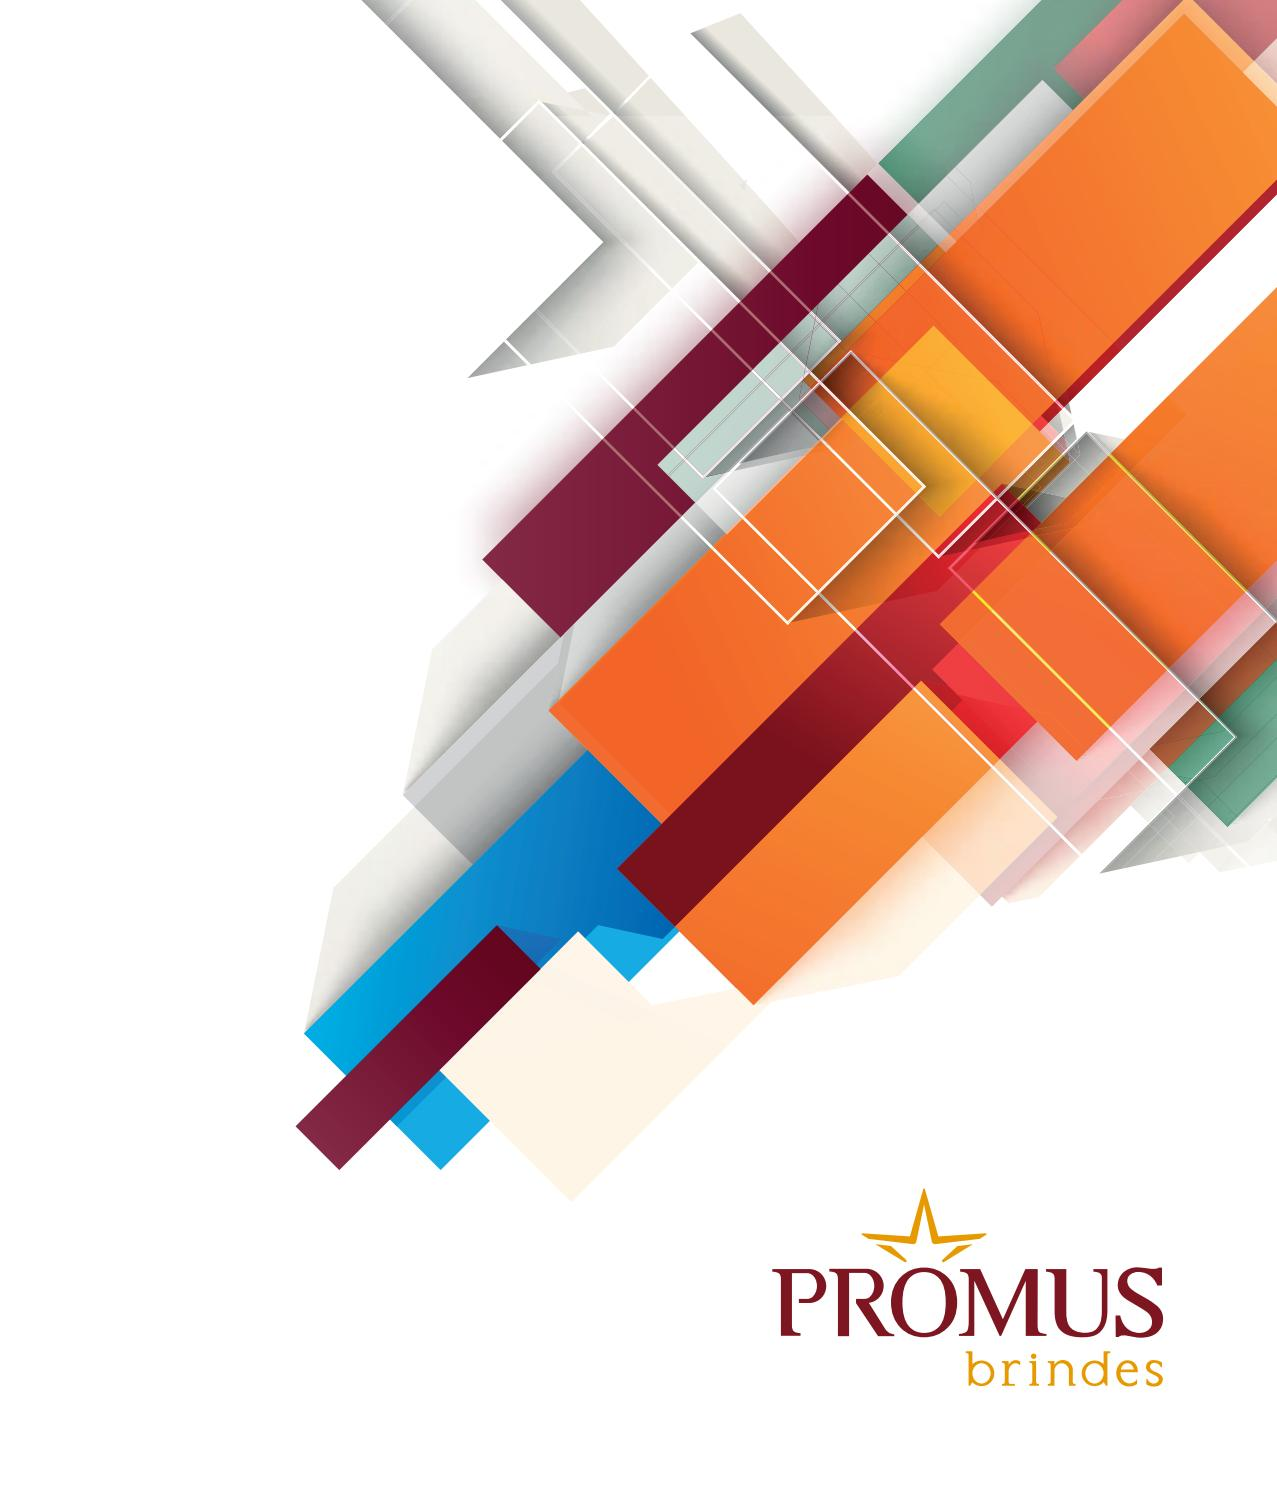 a52ef639701b7 Promus brindes catalogo 2018 2 by hmkt - issuu